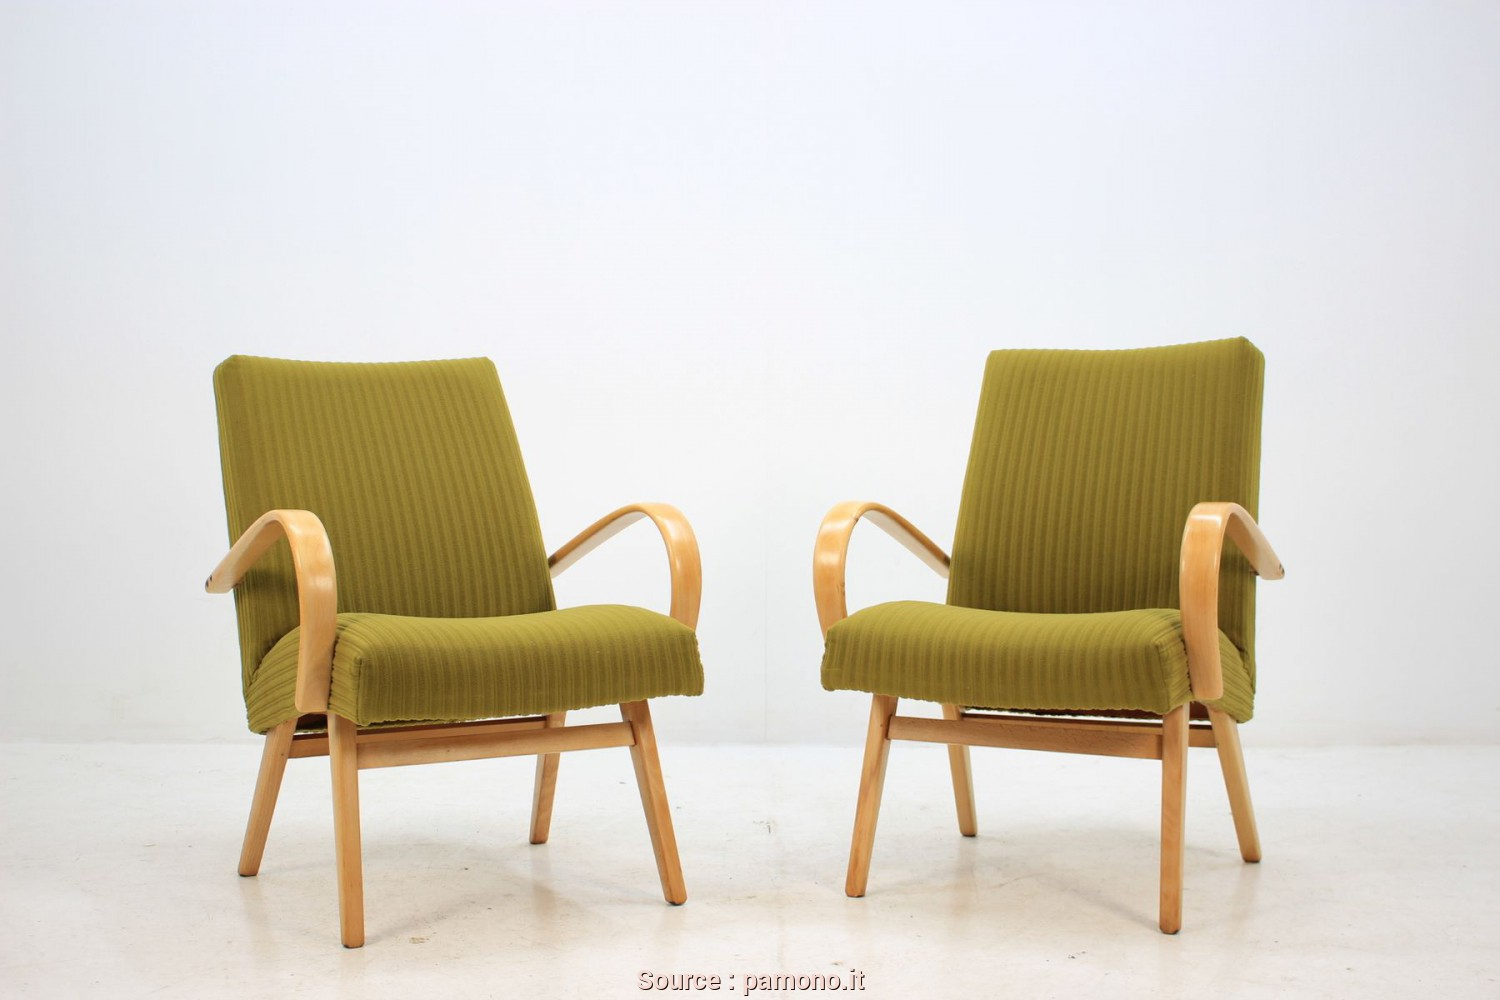 Poltrone Vintage Design, Loveable Poltrone Vintage In Quercia Di Thonet, Anni